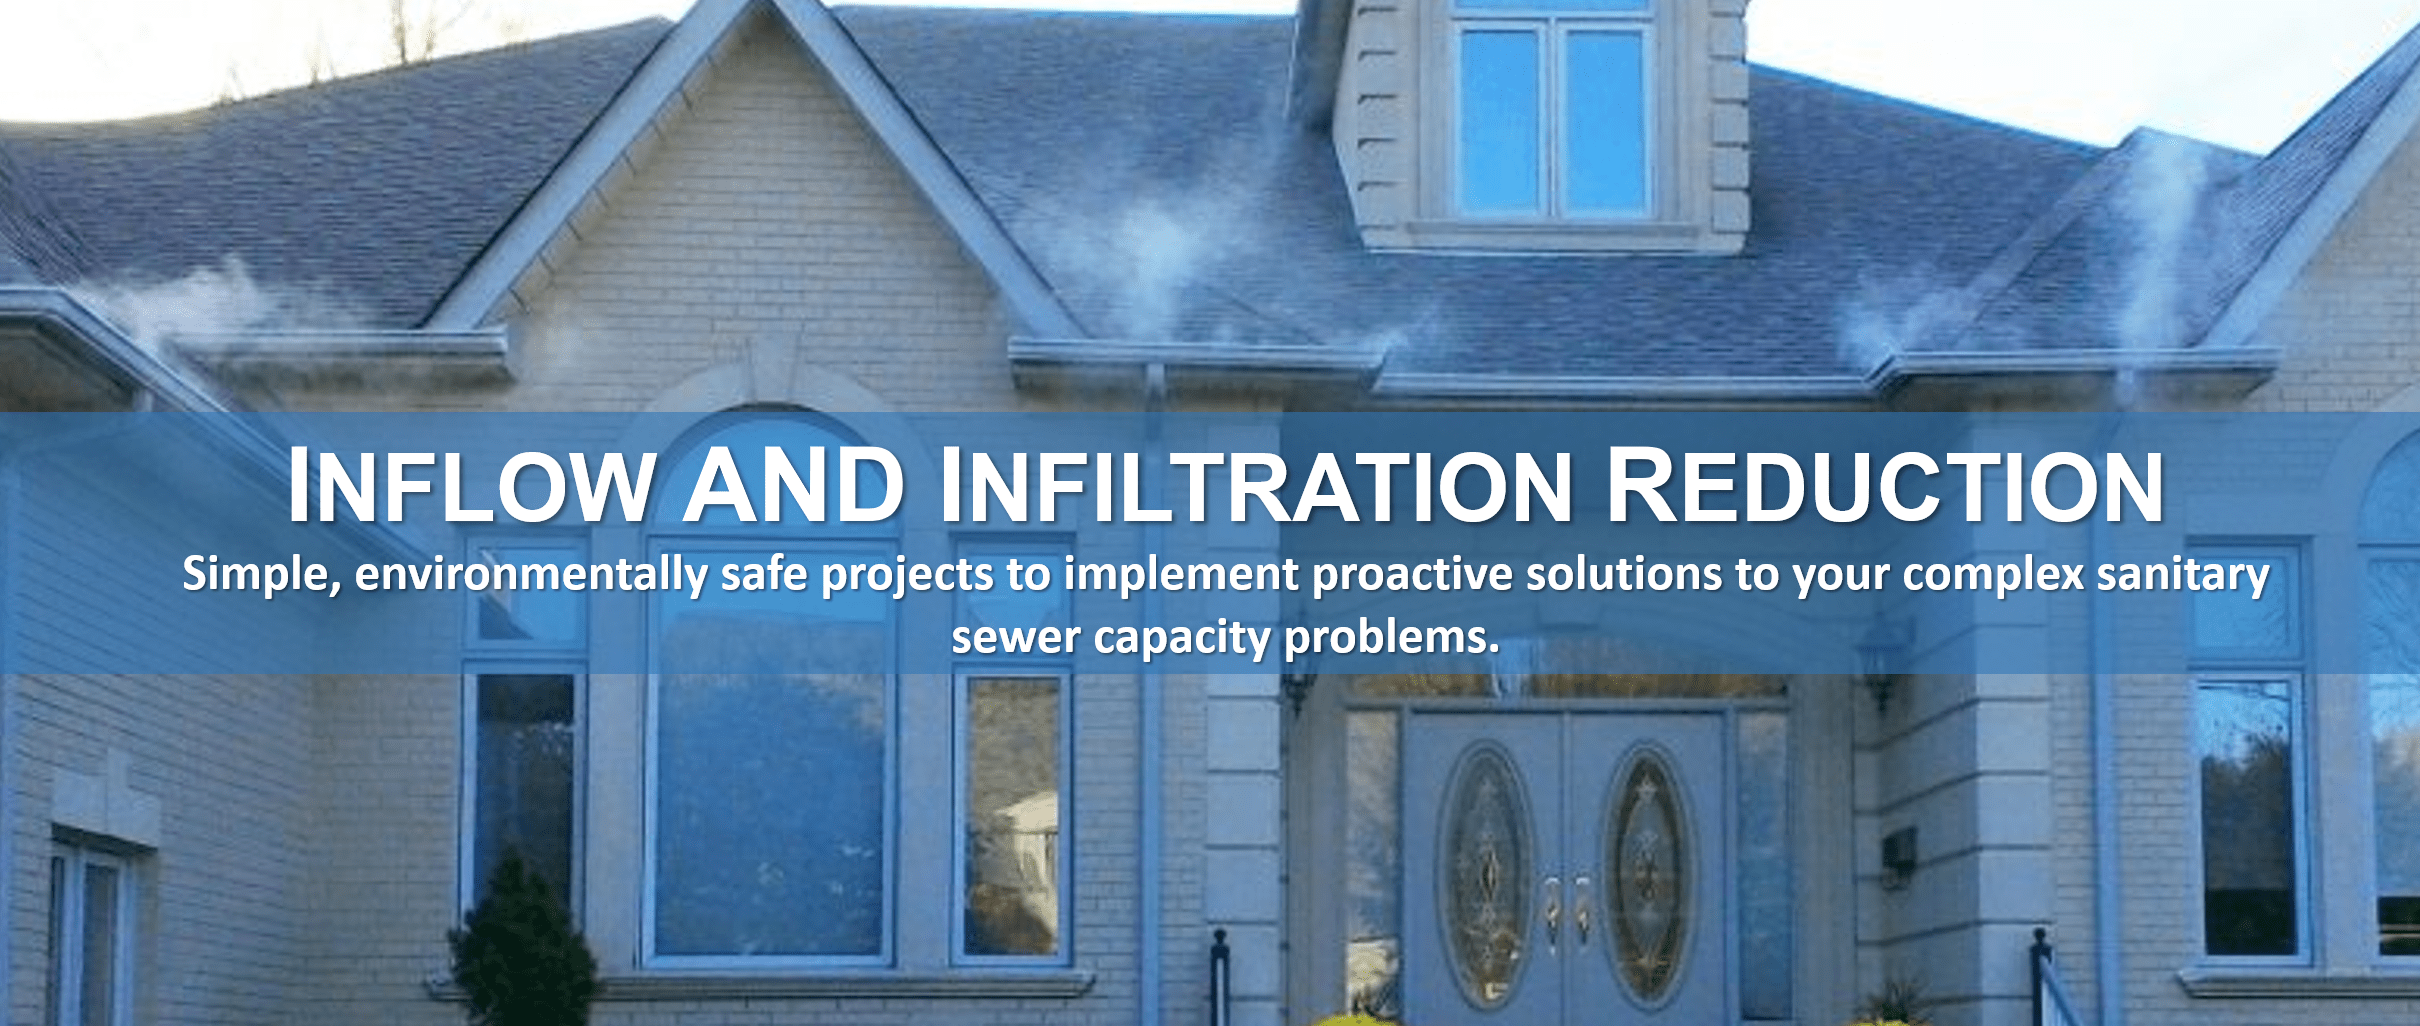 inflow and infiltration reduction civica